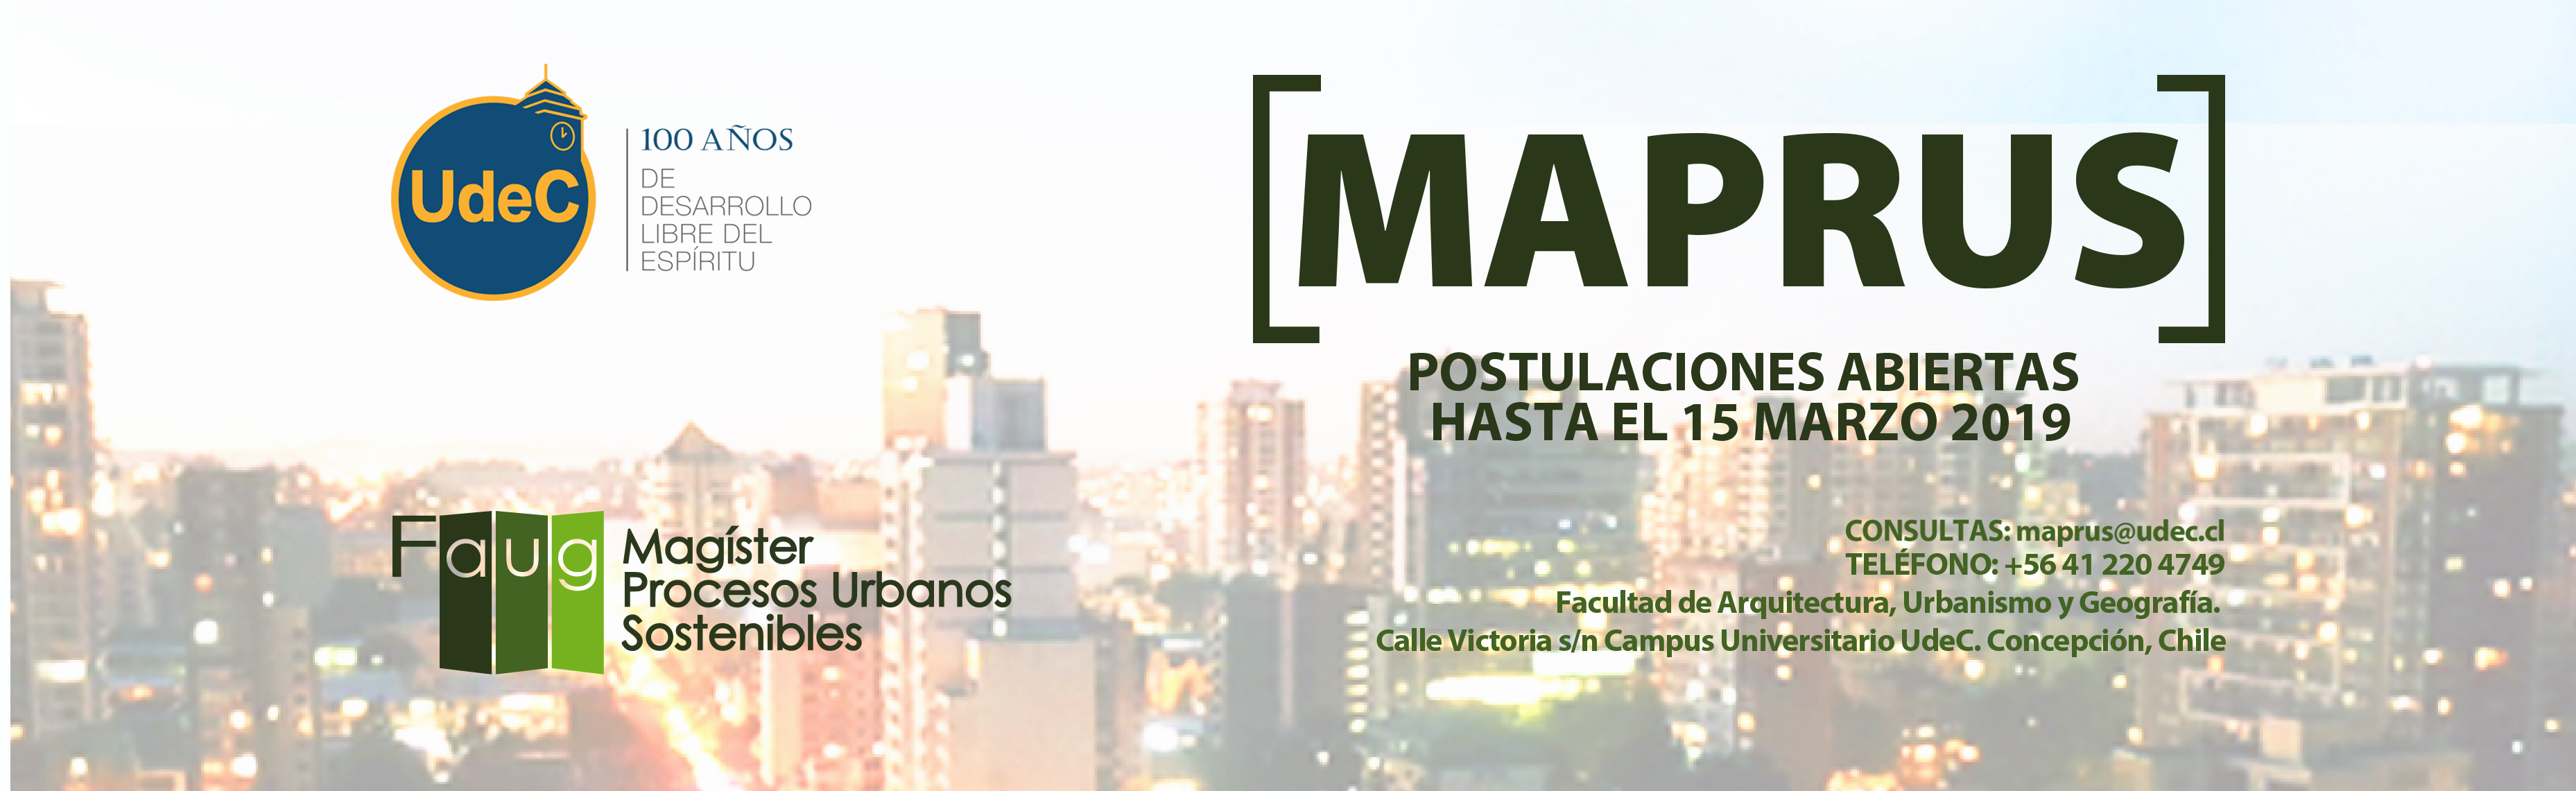 noticia-para-web-2019-MAPRUS-inscripciones2